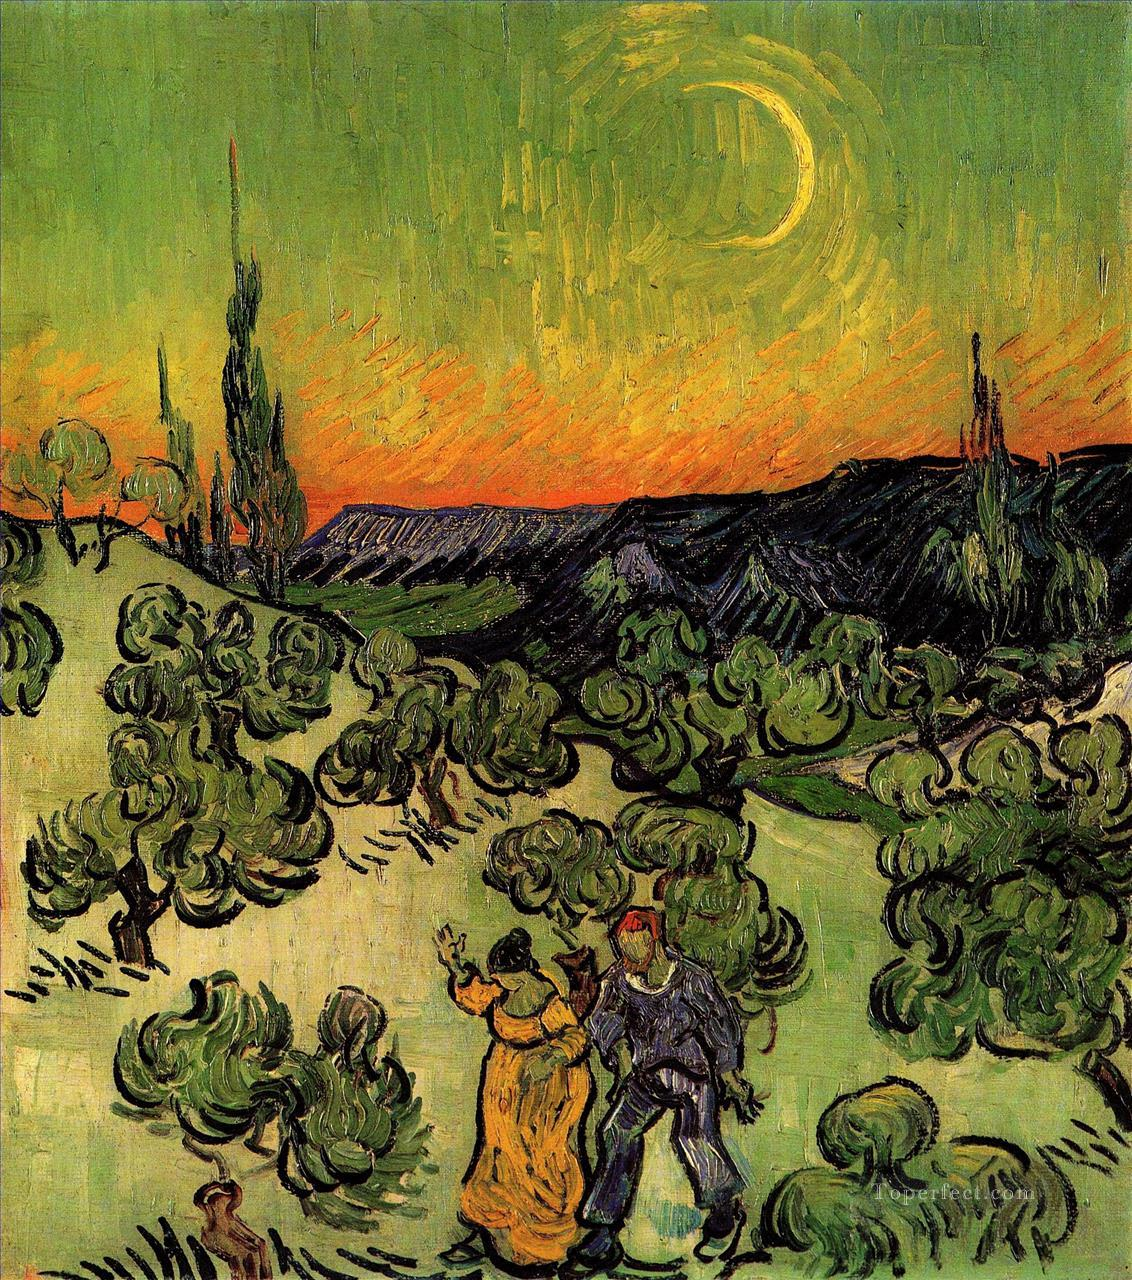 4 Landscape with Couple Walking and Crescent Moon Vincent van Gogh